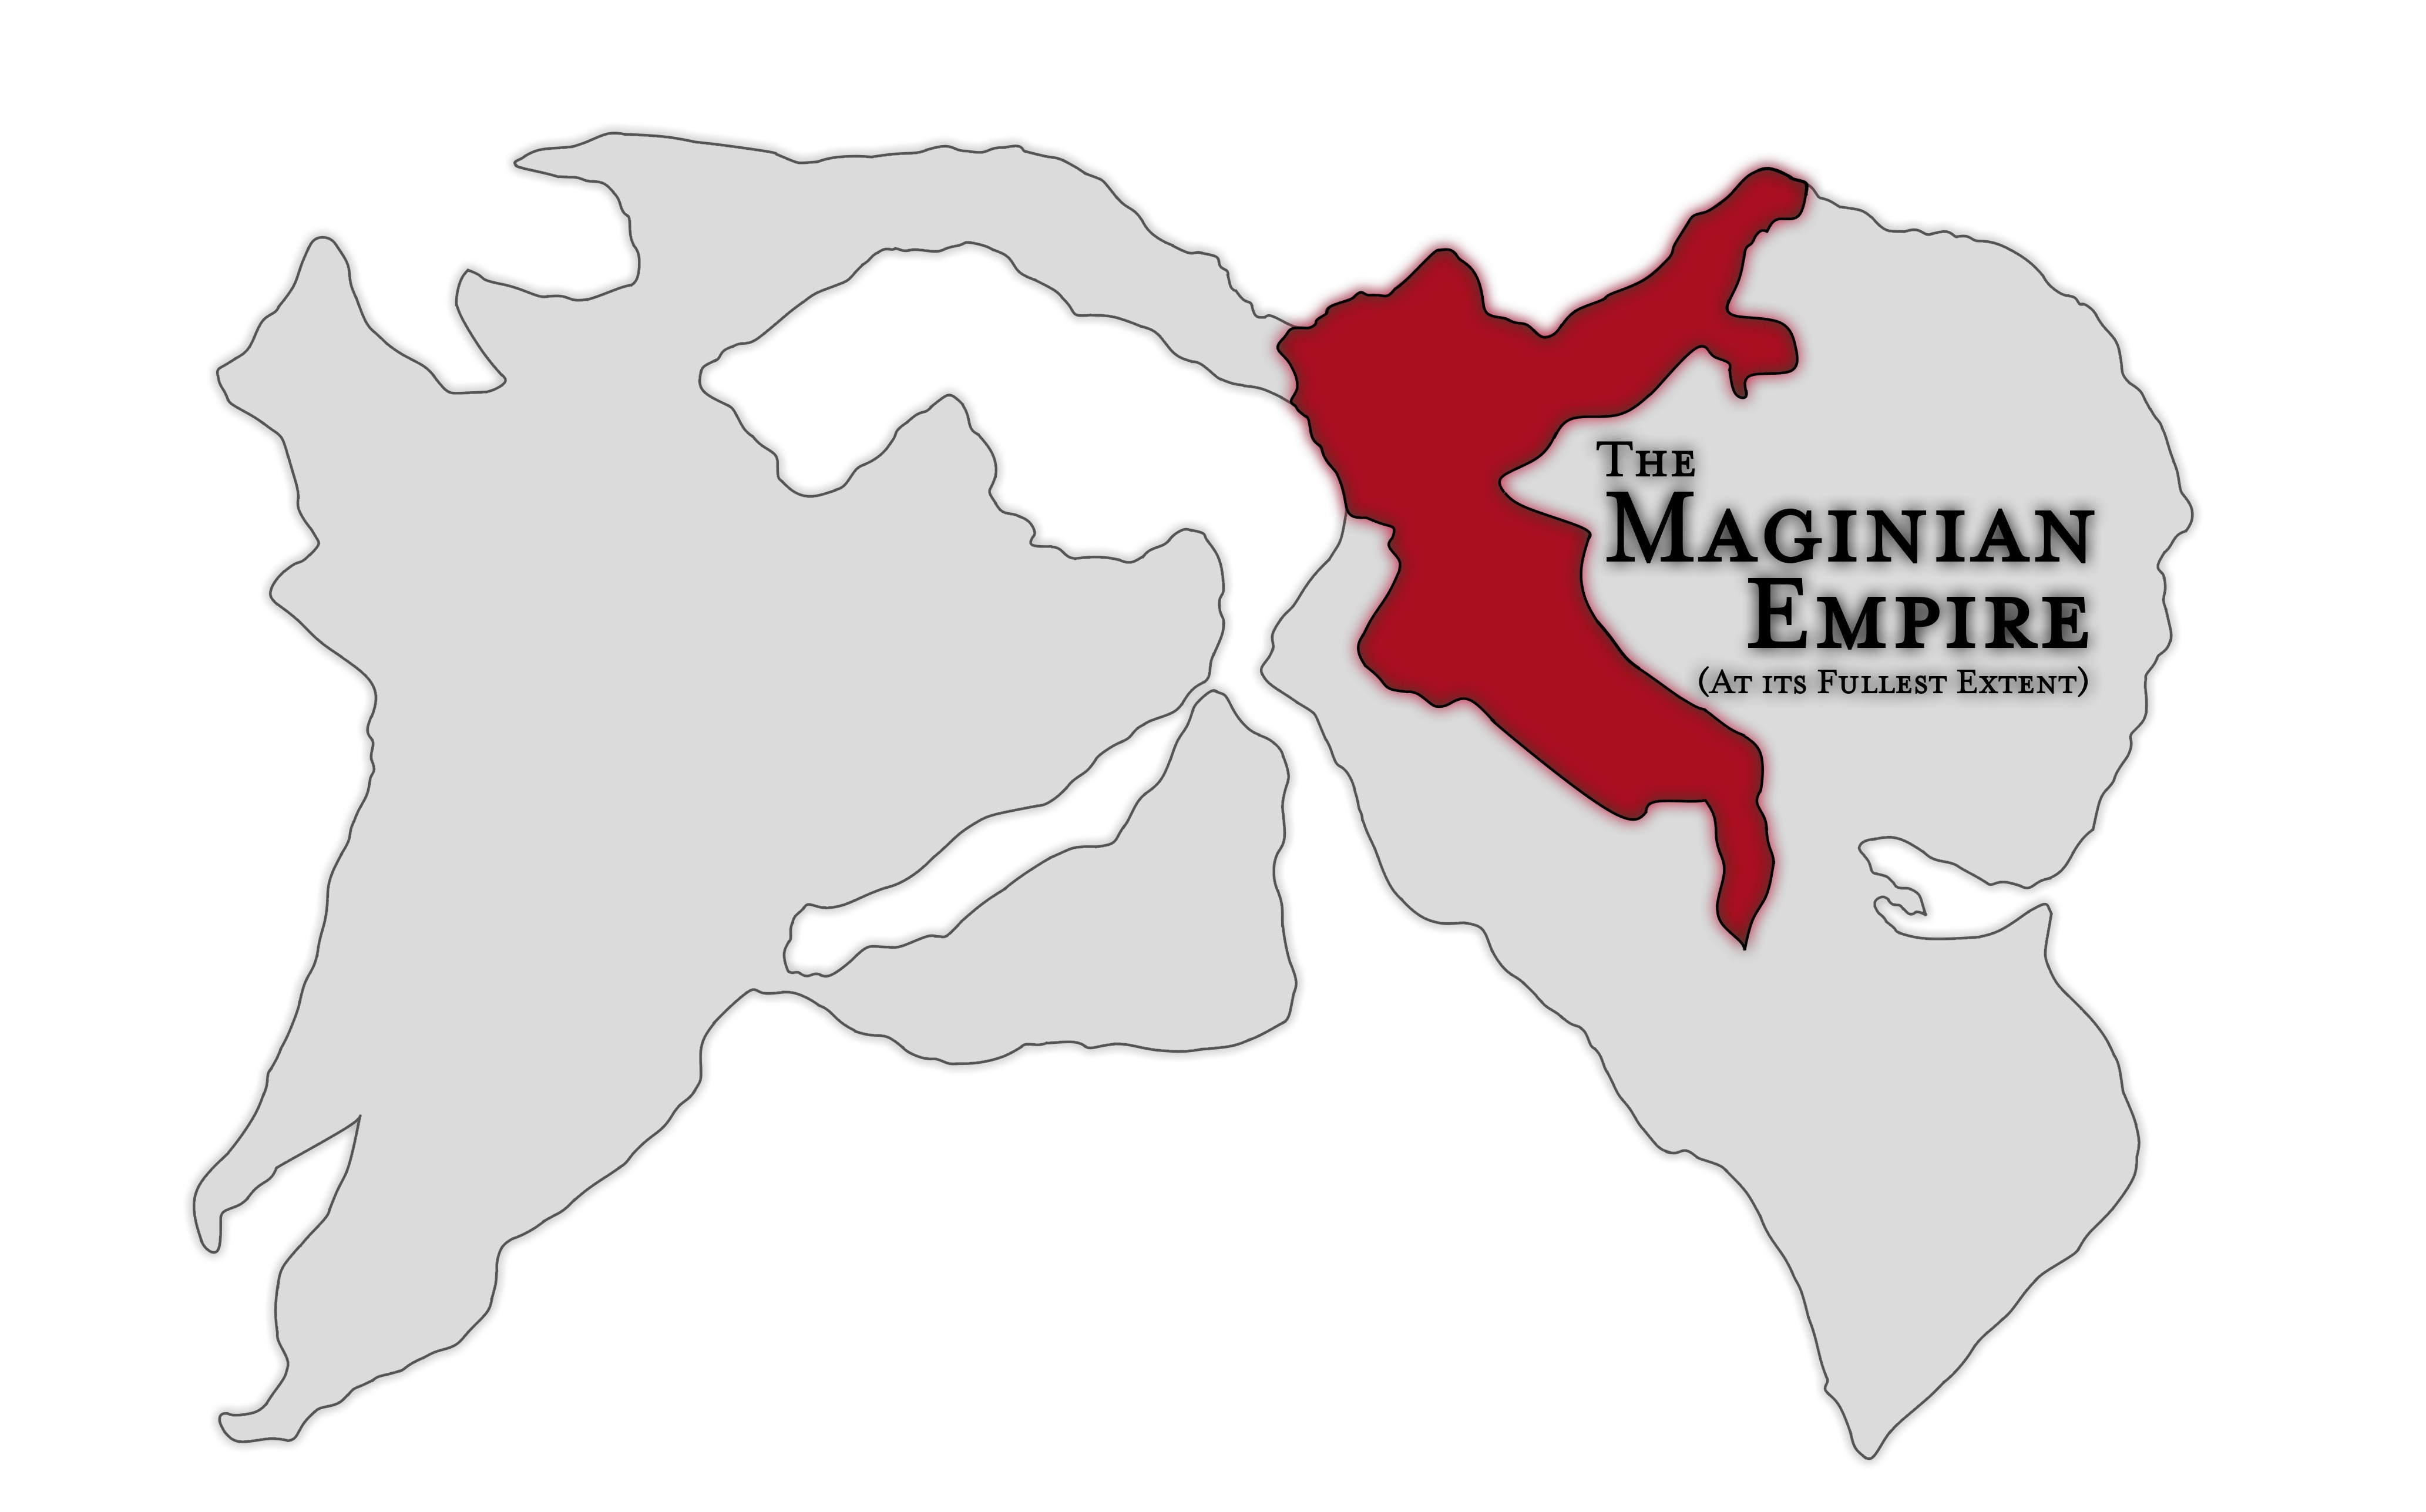 Maginian empire